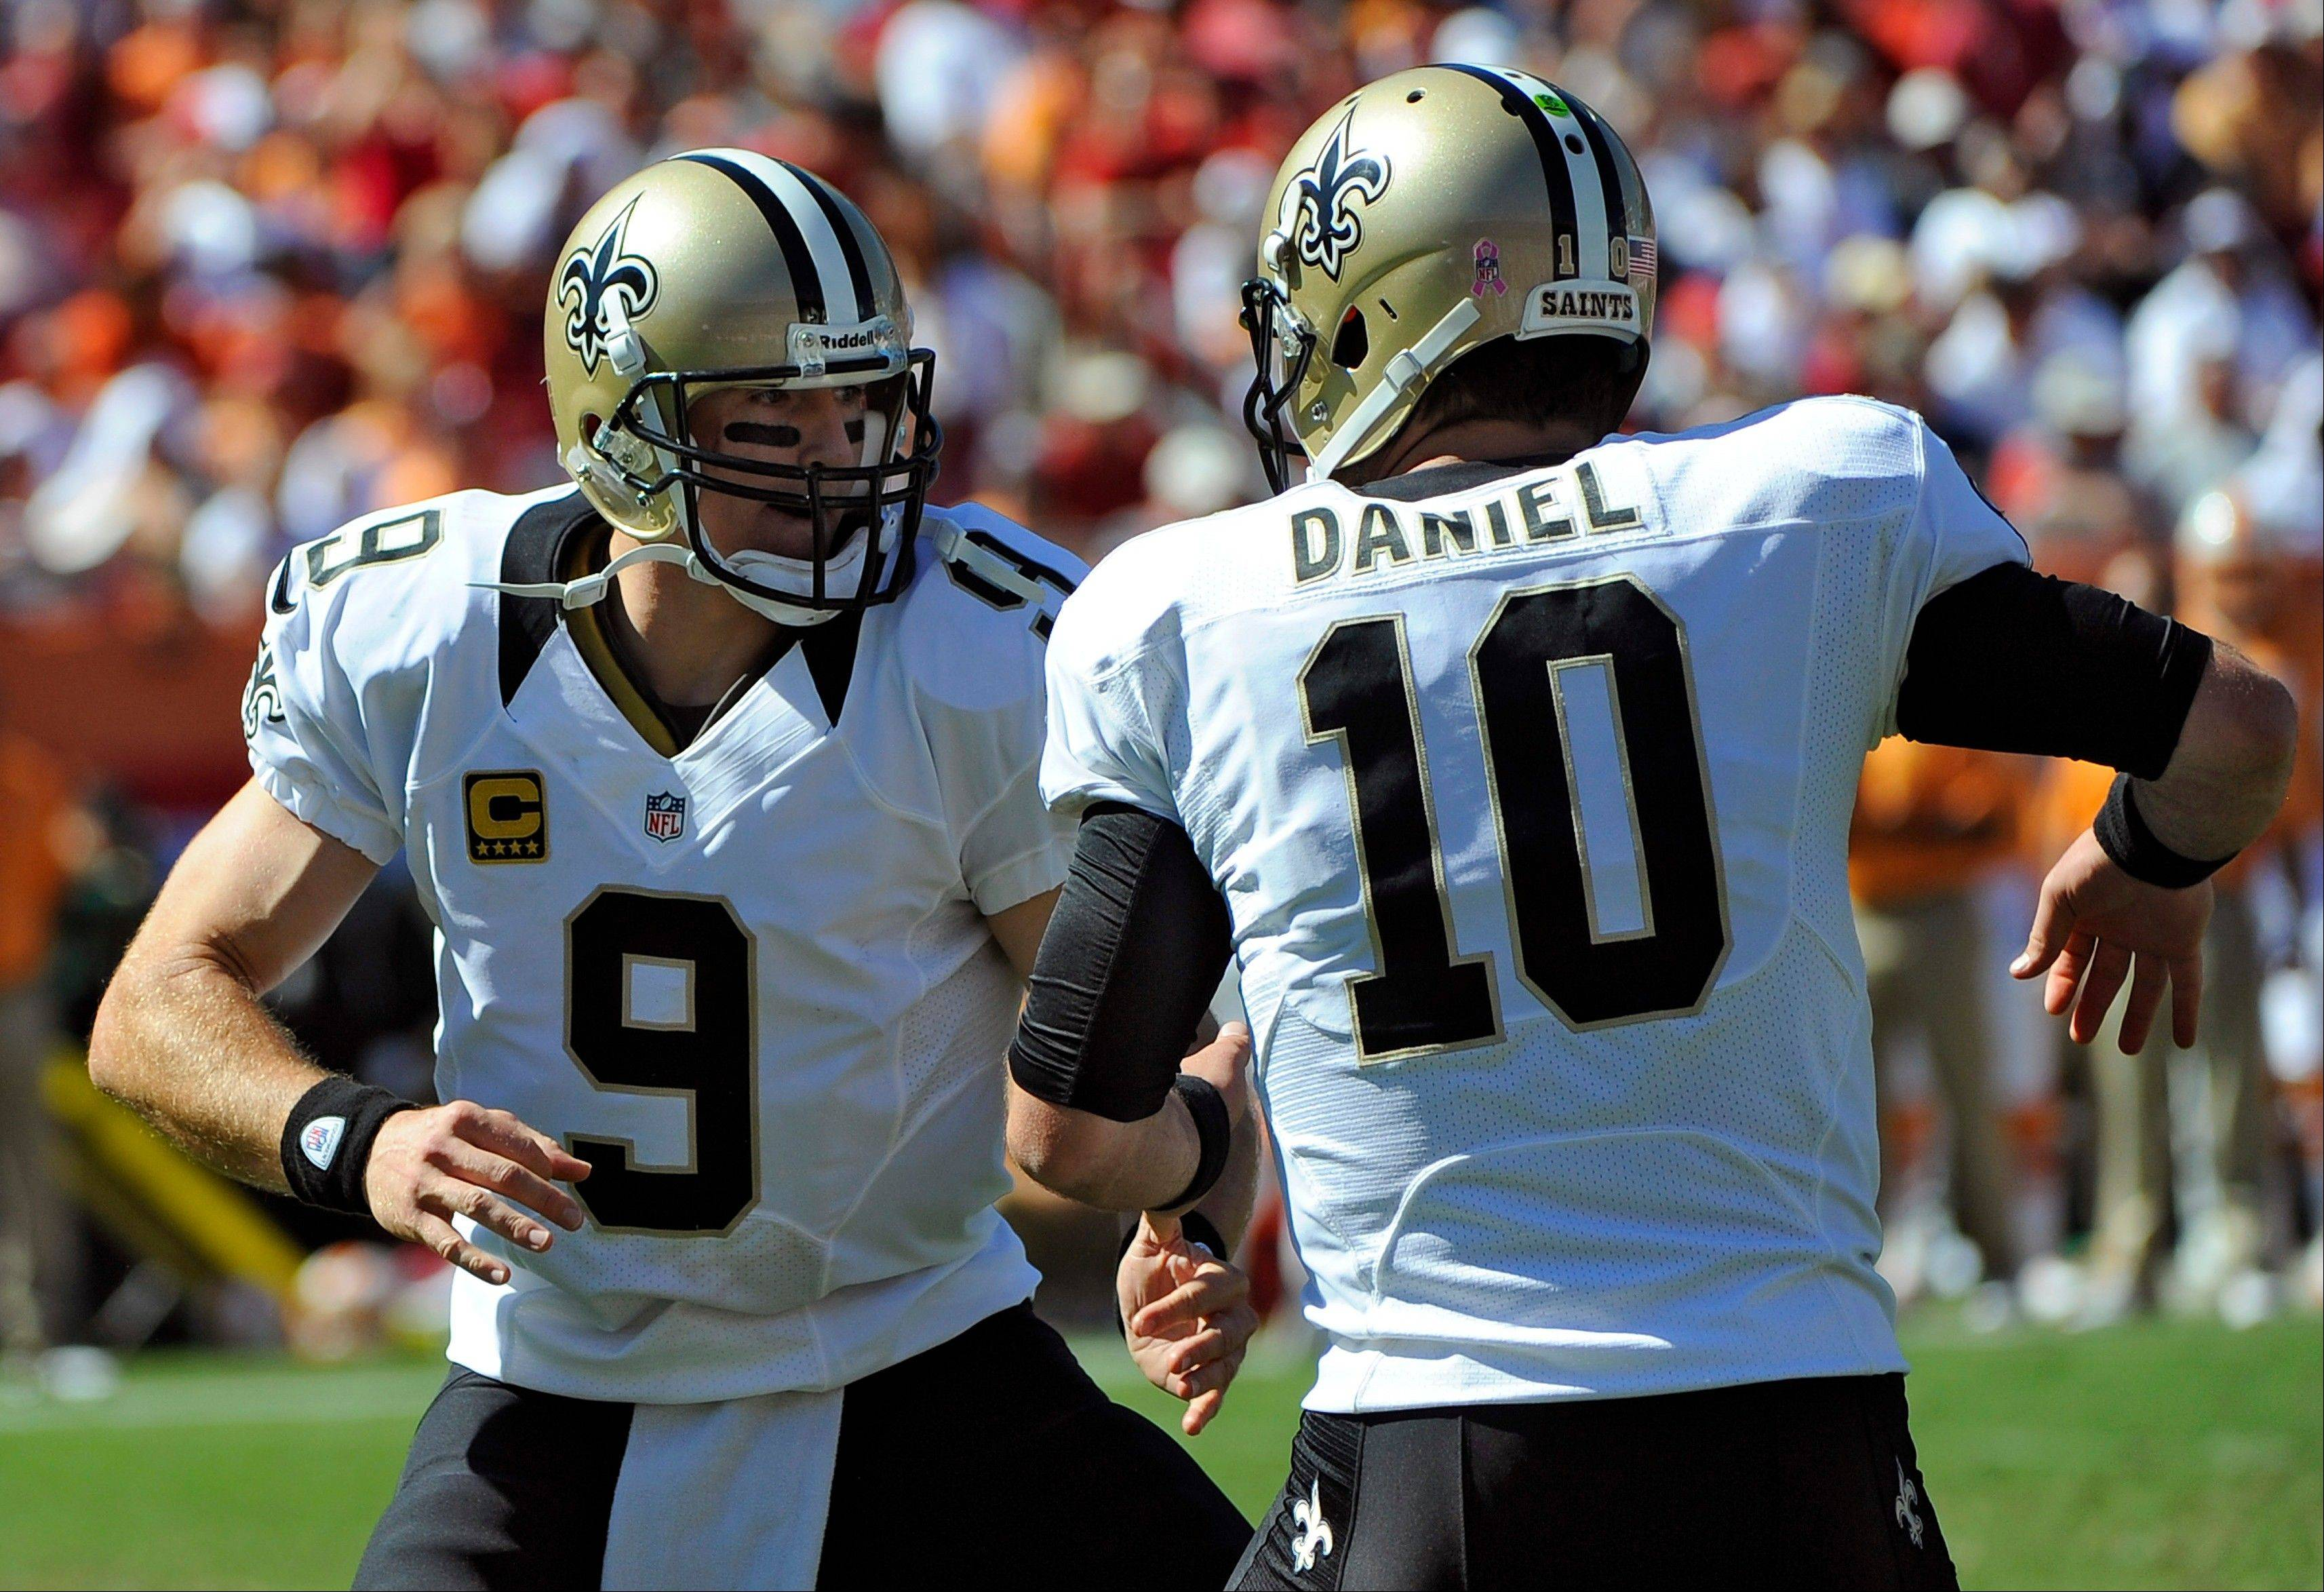 Saints quarterback Drew Brees celebrates with backup quarterback Chase Daniel after throwing a touchdown pass to tight end David Thomas against the Buccaneers on Sunday in Tampa, Fla.